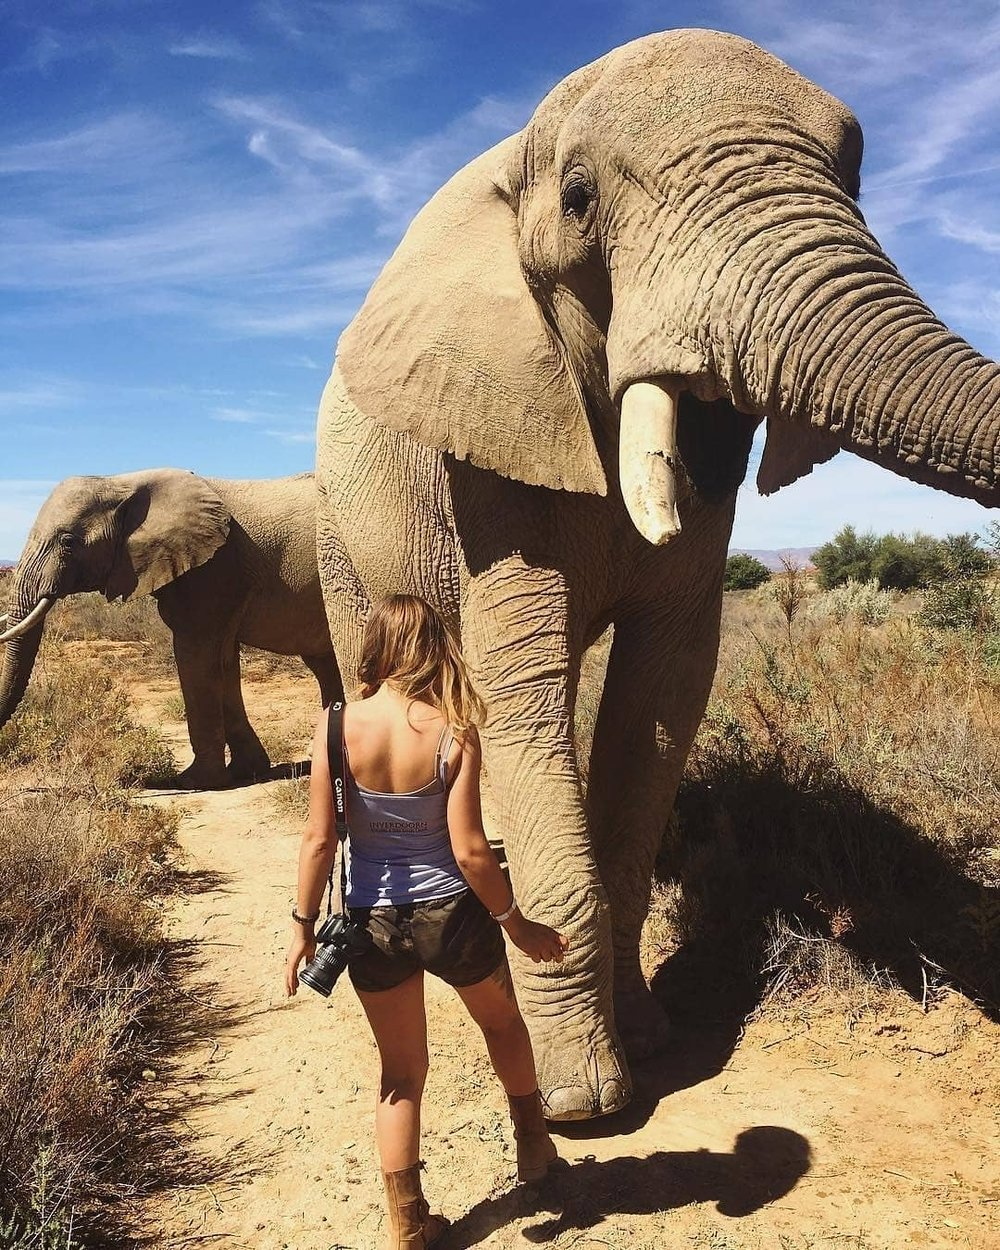 Lisa is more known for her photographs of (and with) cheetahs on the in Western Cape Cheetah Conservation but here she stands in front of an African elephant. We wouldn't recommend standing in an elephant's way but Lisa is up close and personal with the photo to capture this incredible moment!